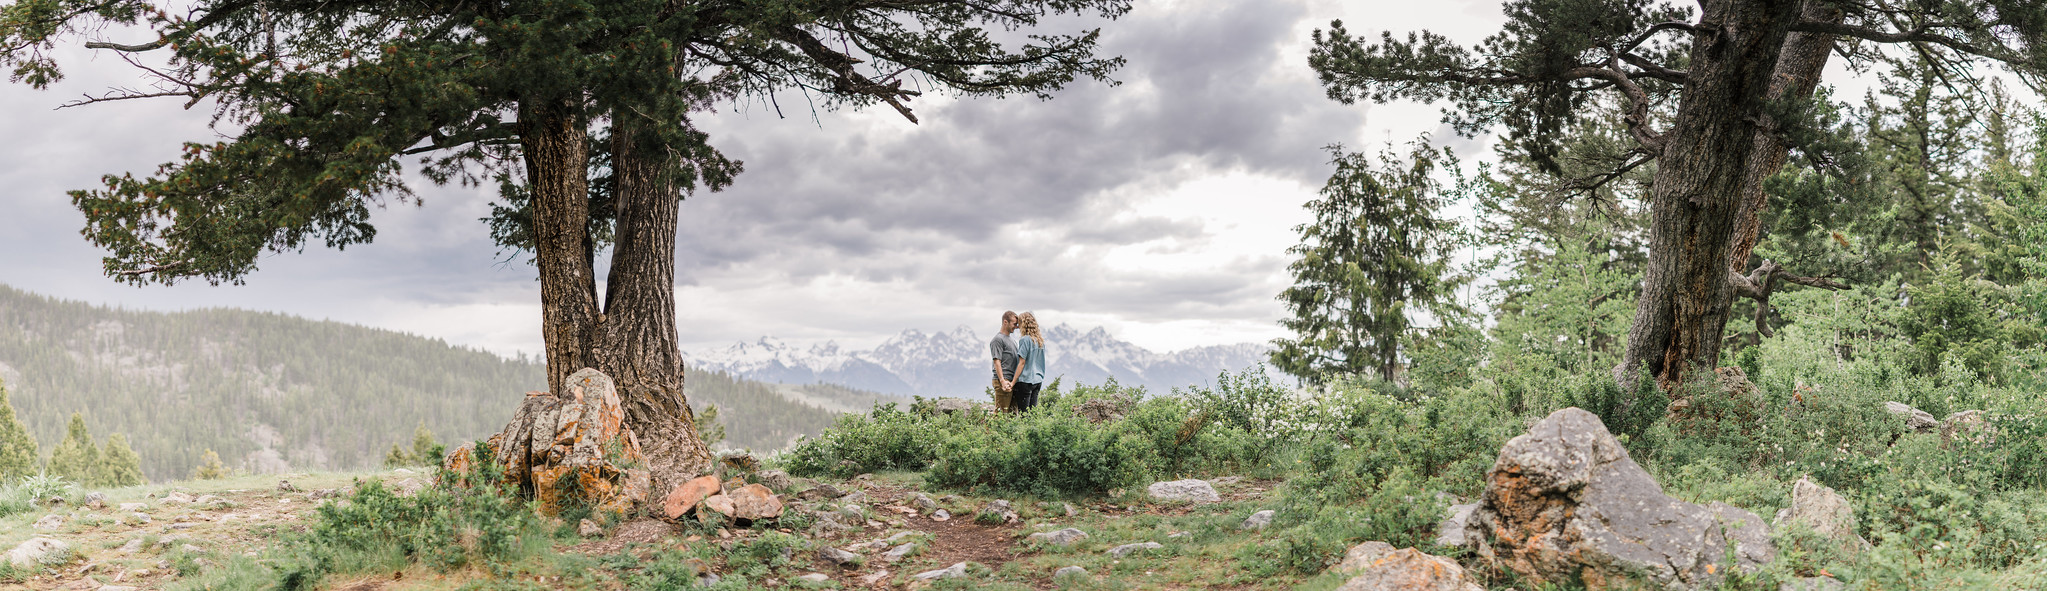 Intimate Grand Teton National Park Summer Engagement Session